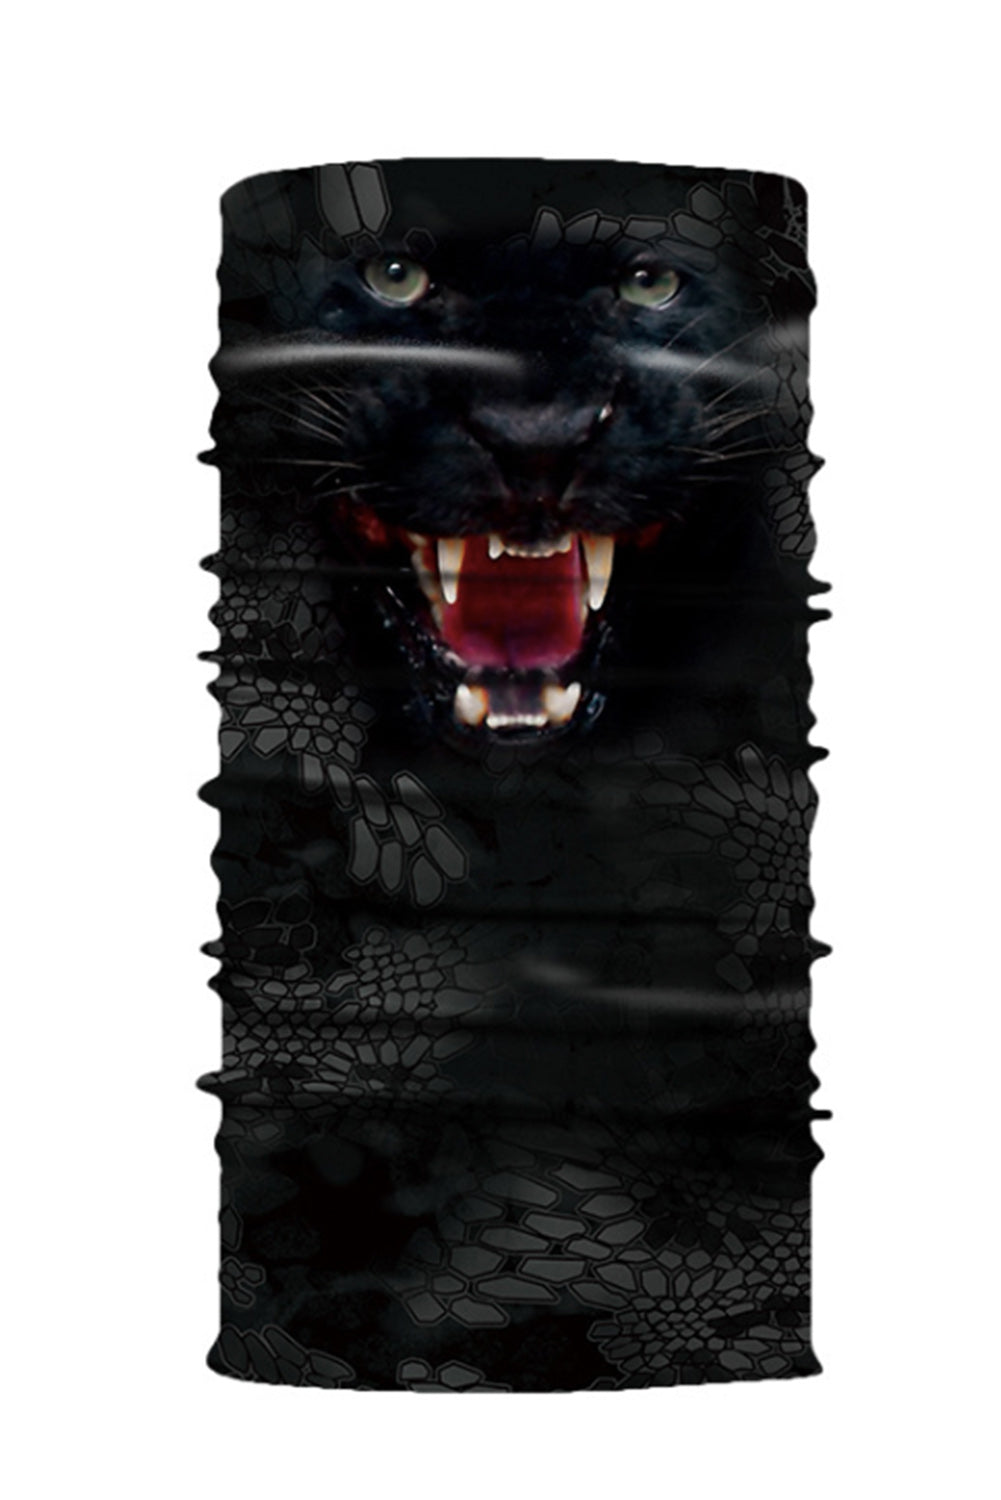 Black Animal Print Cycling Motorcycle Head Scarf Neck Warmer Face Mask Neck Gaiter Discount Designer Fashion Clothes Shoes Bags Women Men Kids Children Black Owned Business